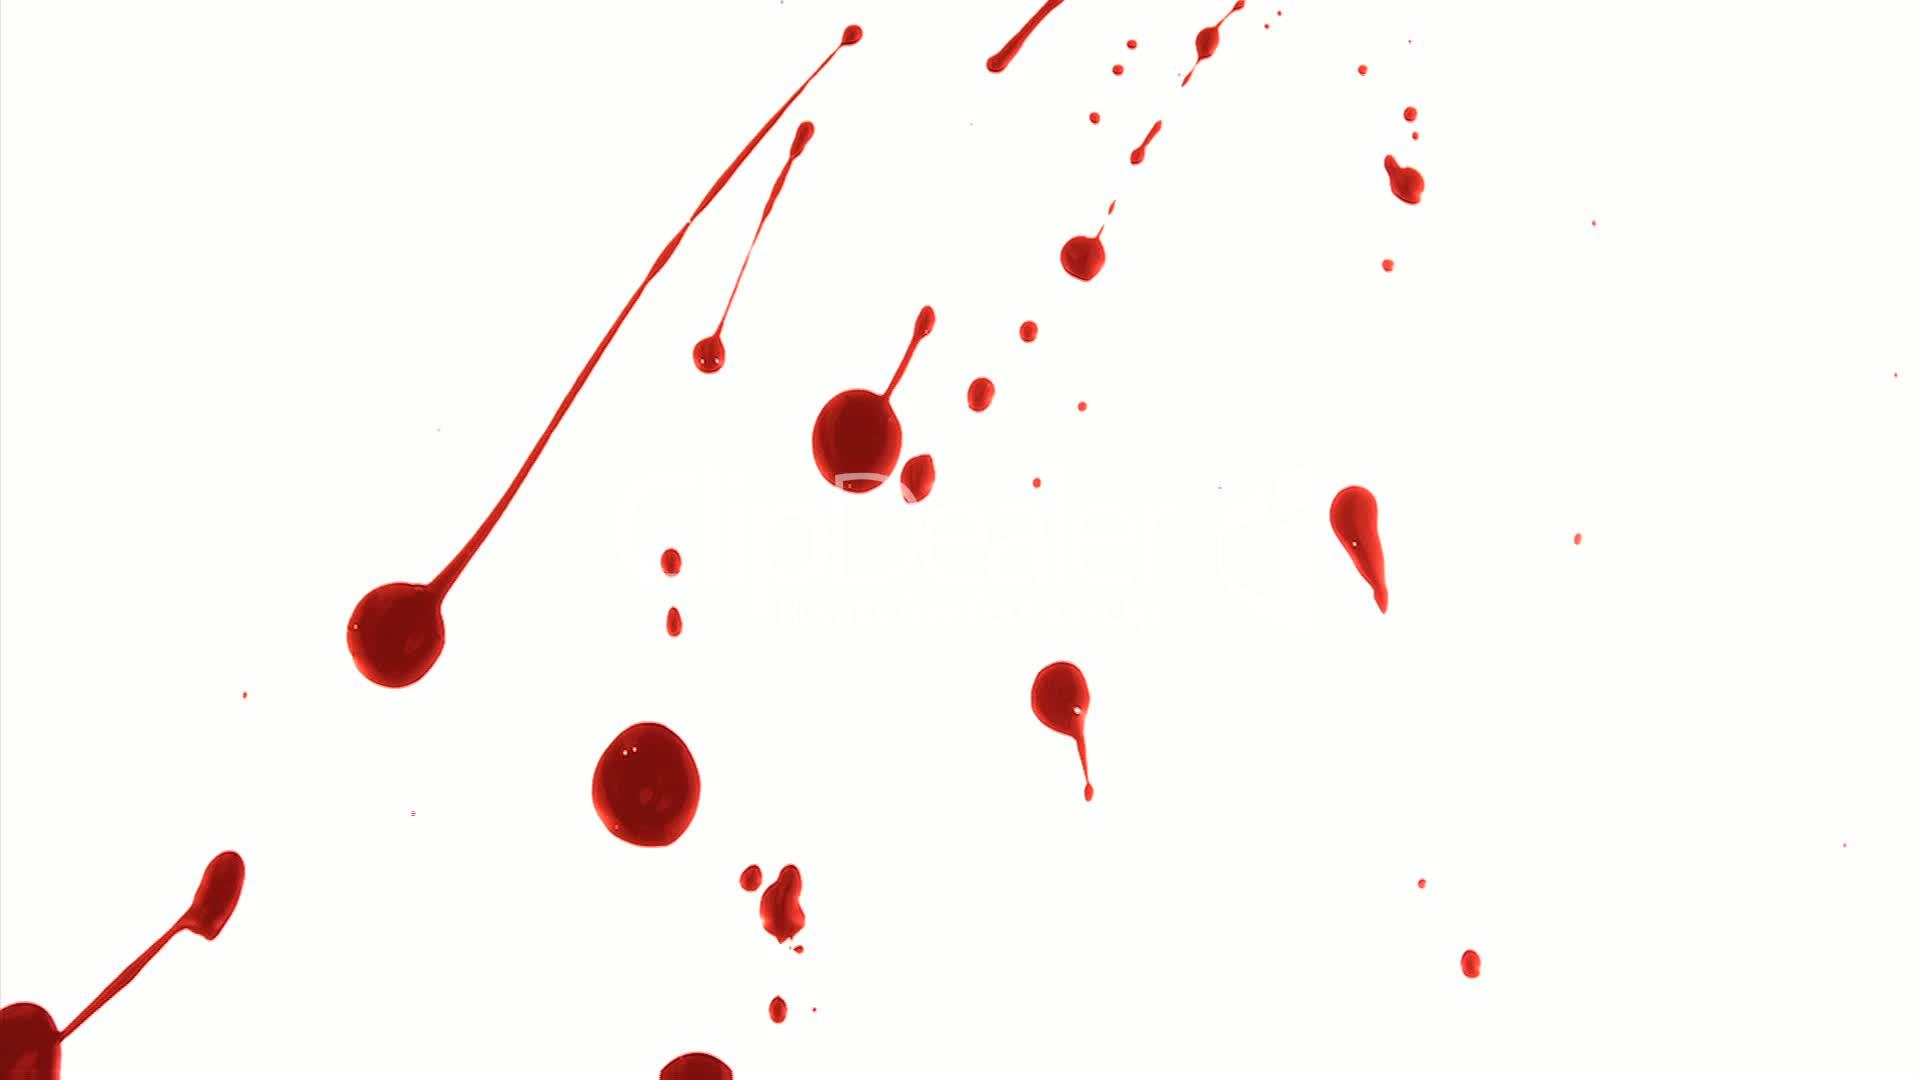 Blood Splatter 2: Royalty-free video and stock footage